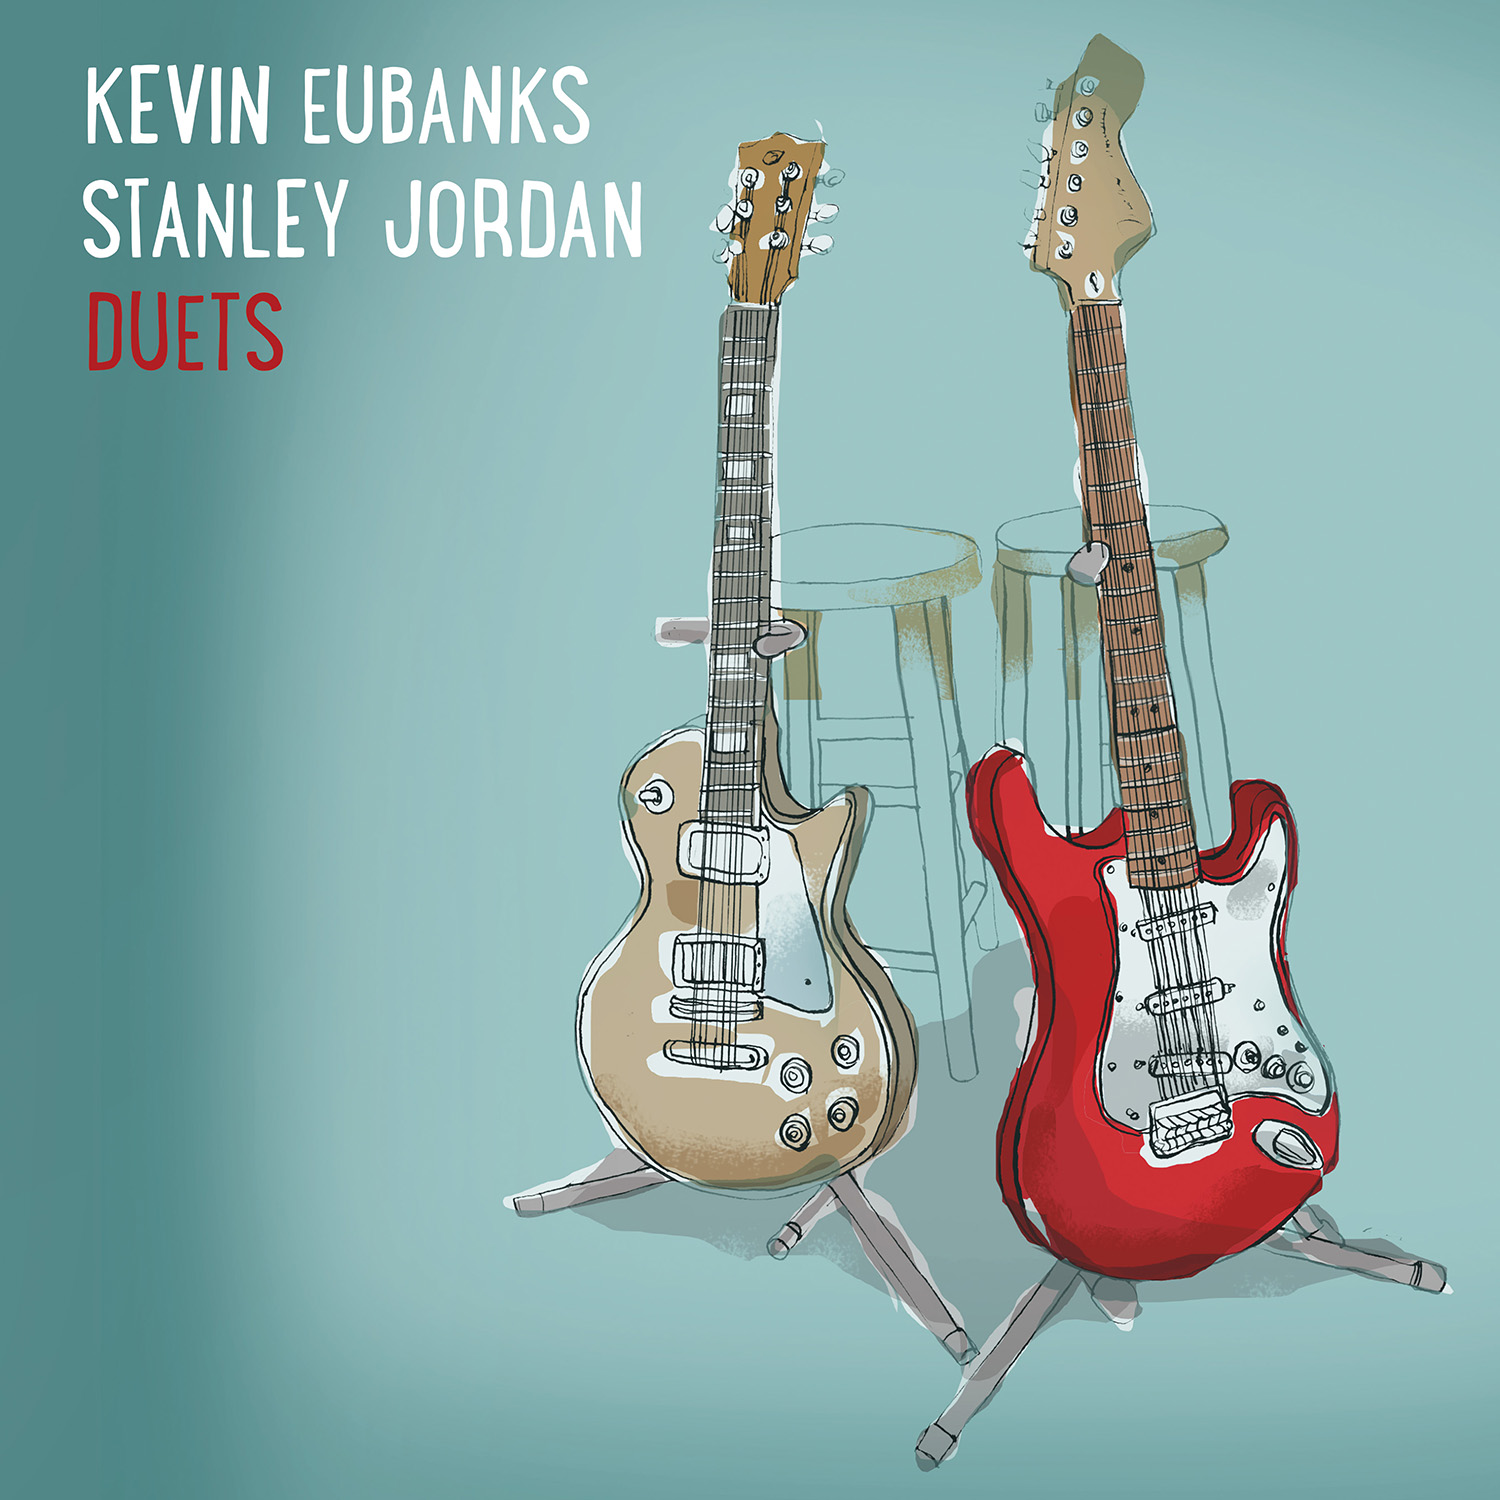 Review: Eubanks, Jordan display special chemistry on new CD